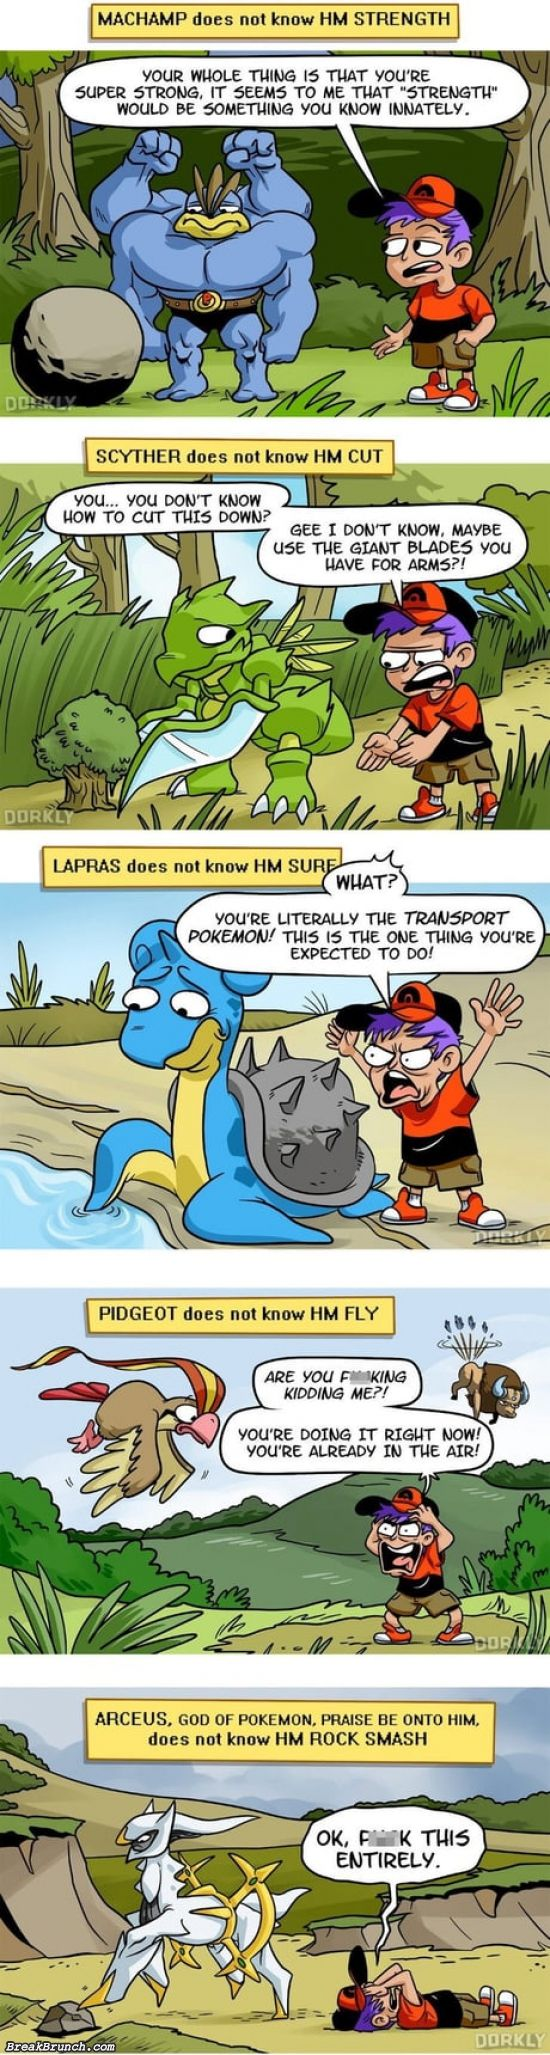 Stupid Pokemon game logic